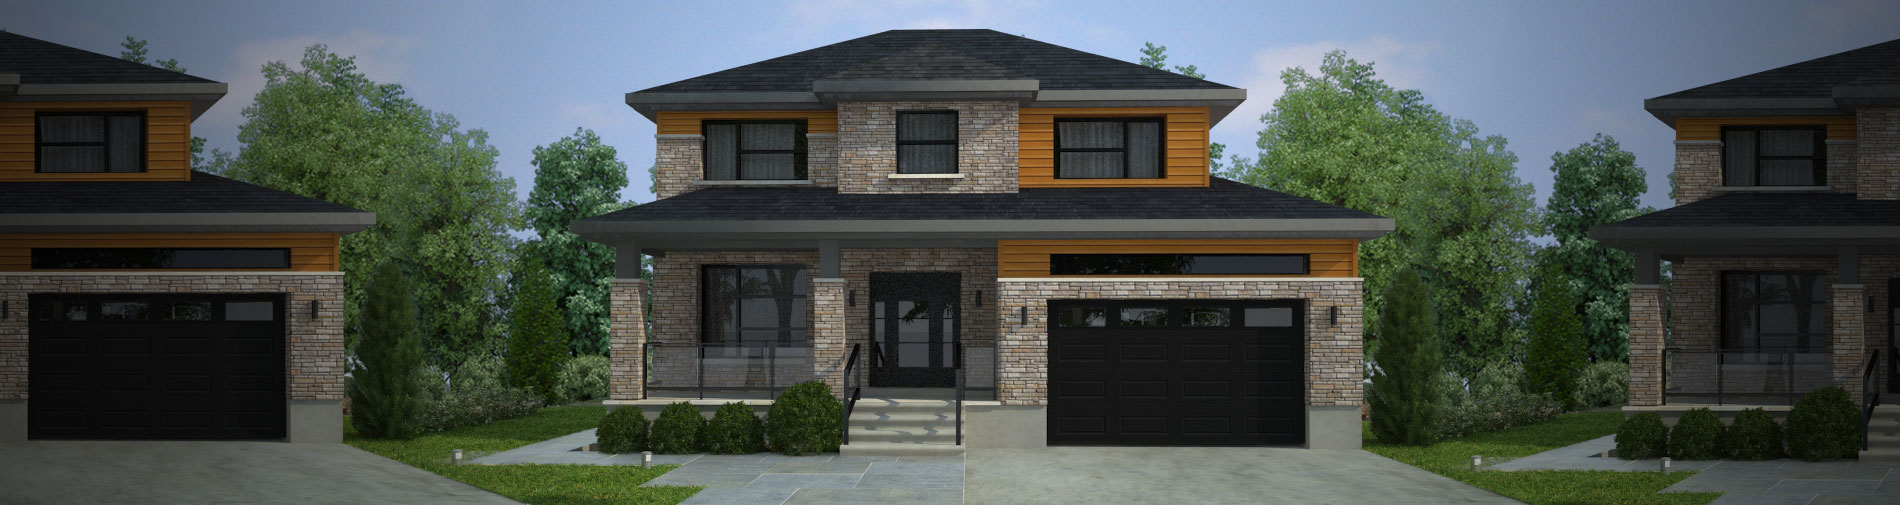 The biggest residential projet of eastern ontario